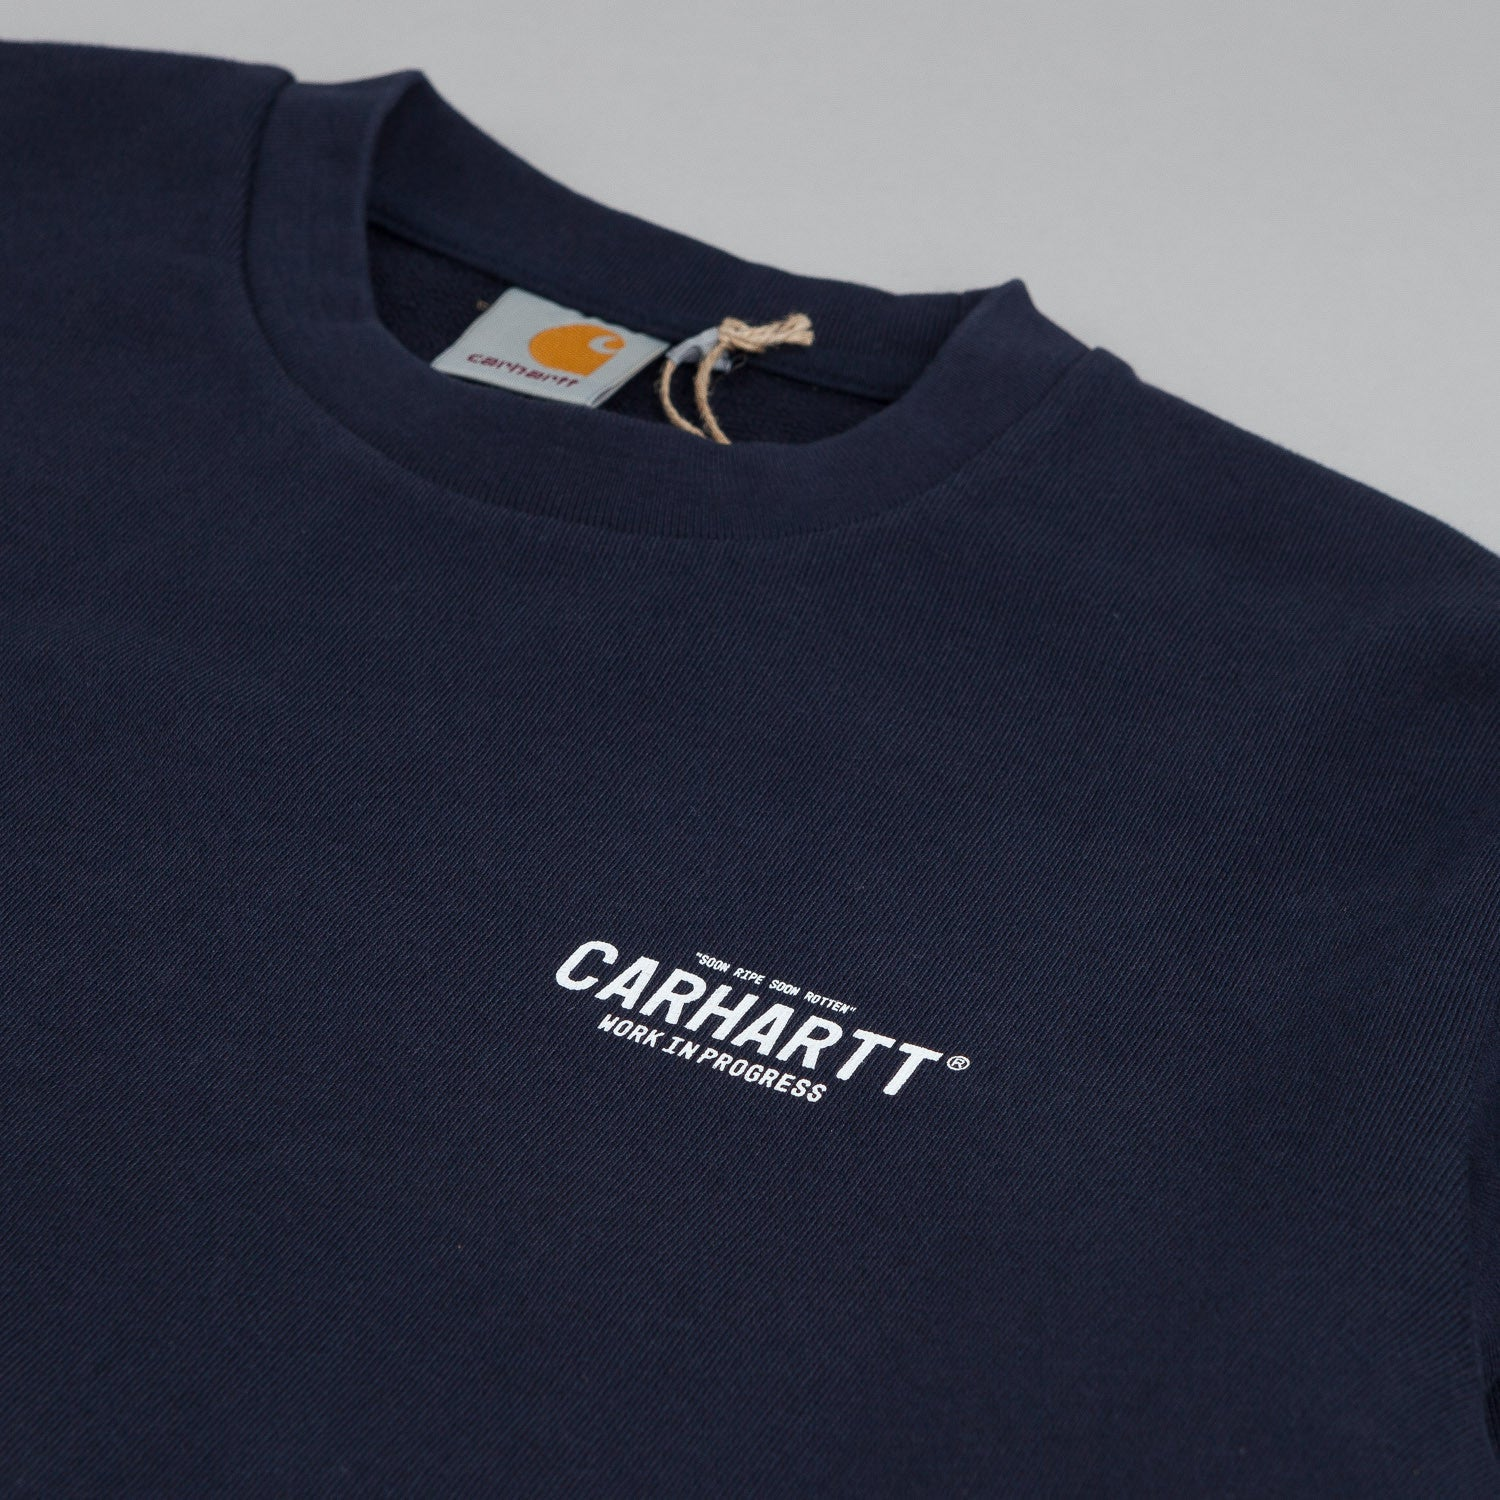 Carhartt 89 Sweatshirt - Duke Blue / White